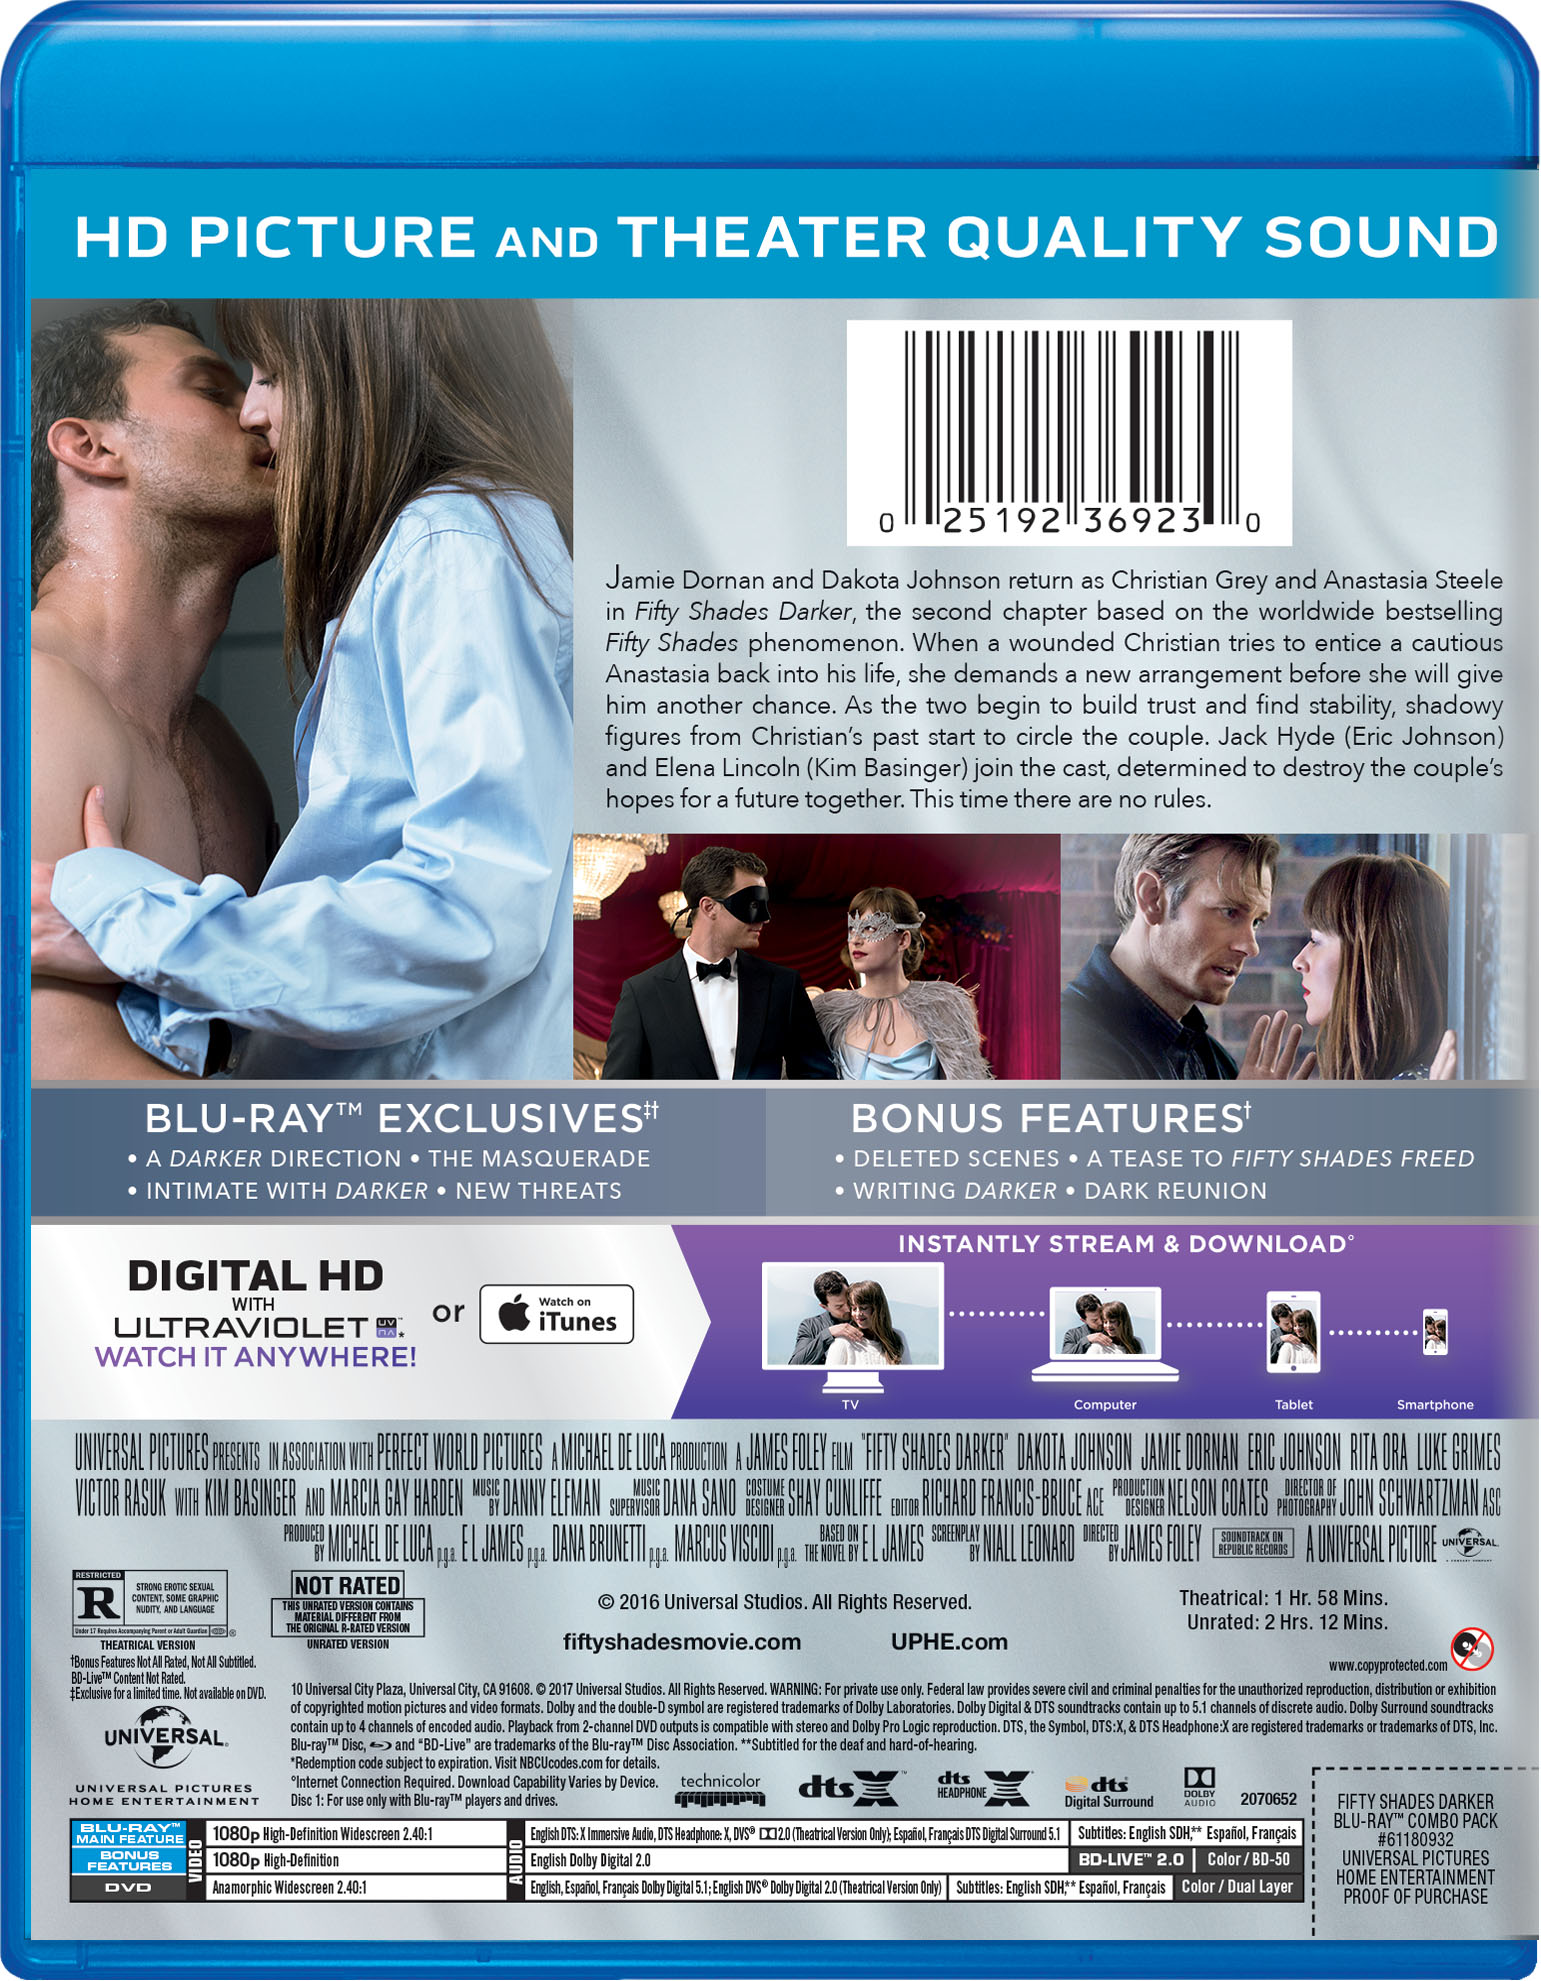 Fifty Shades Darker Movie Page Dvd Blu Ray Digital Hd On